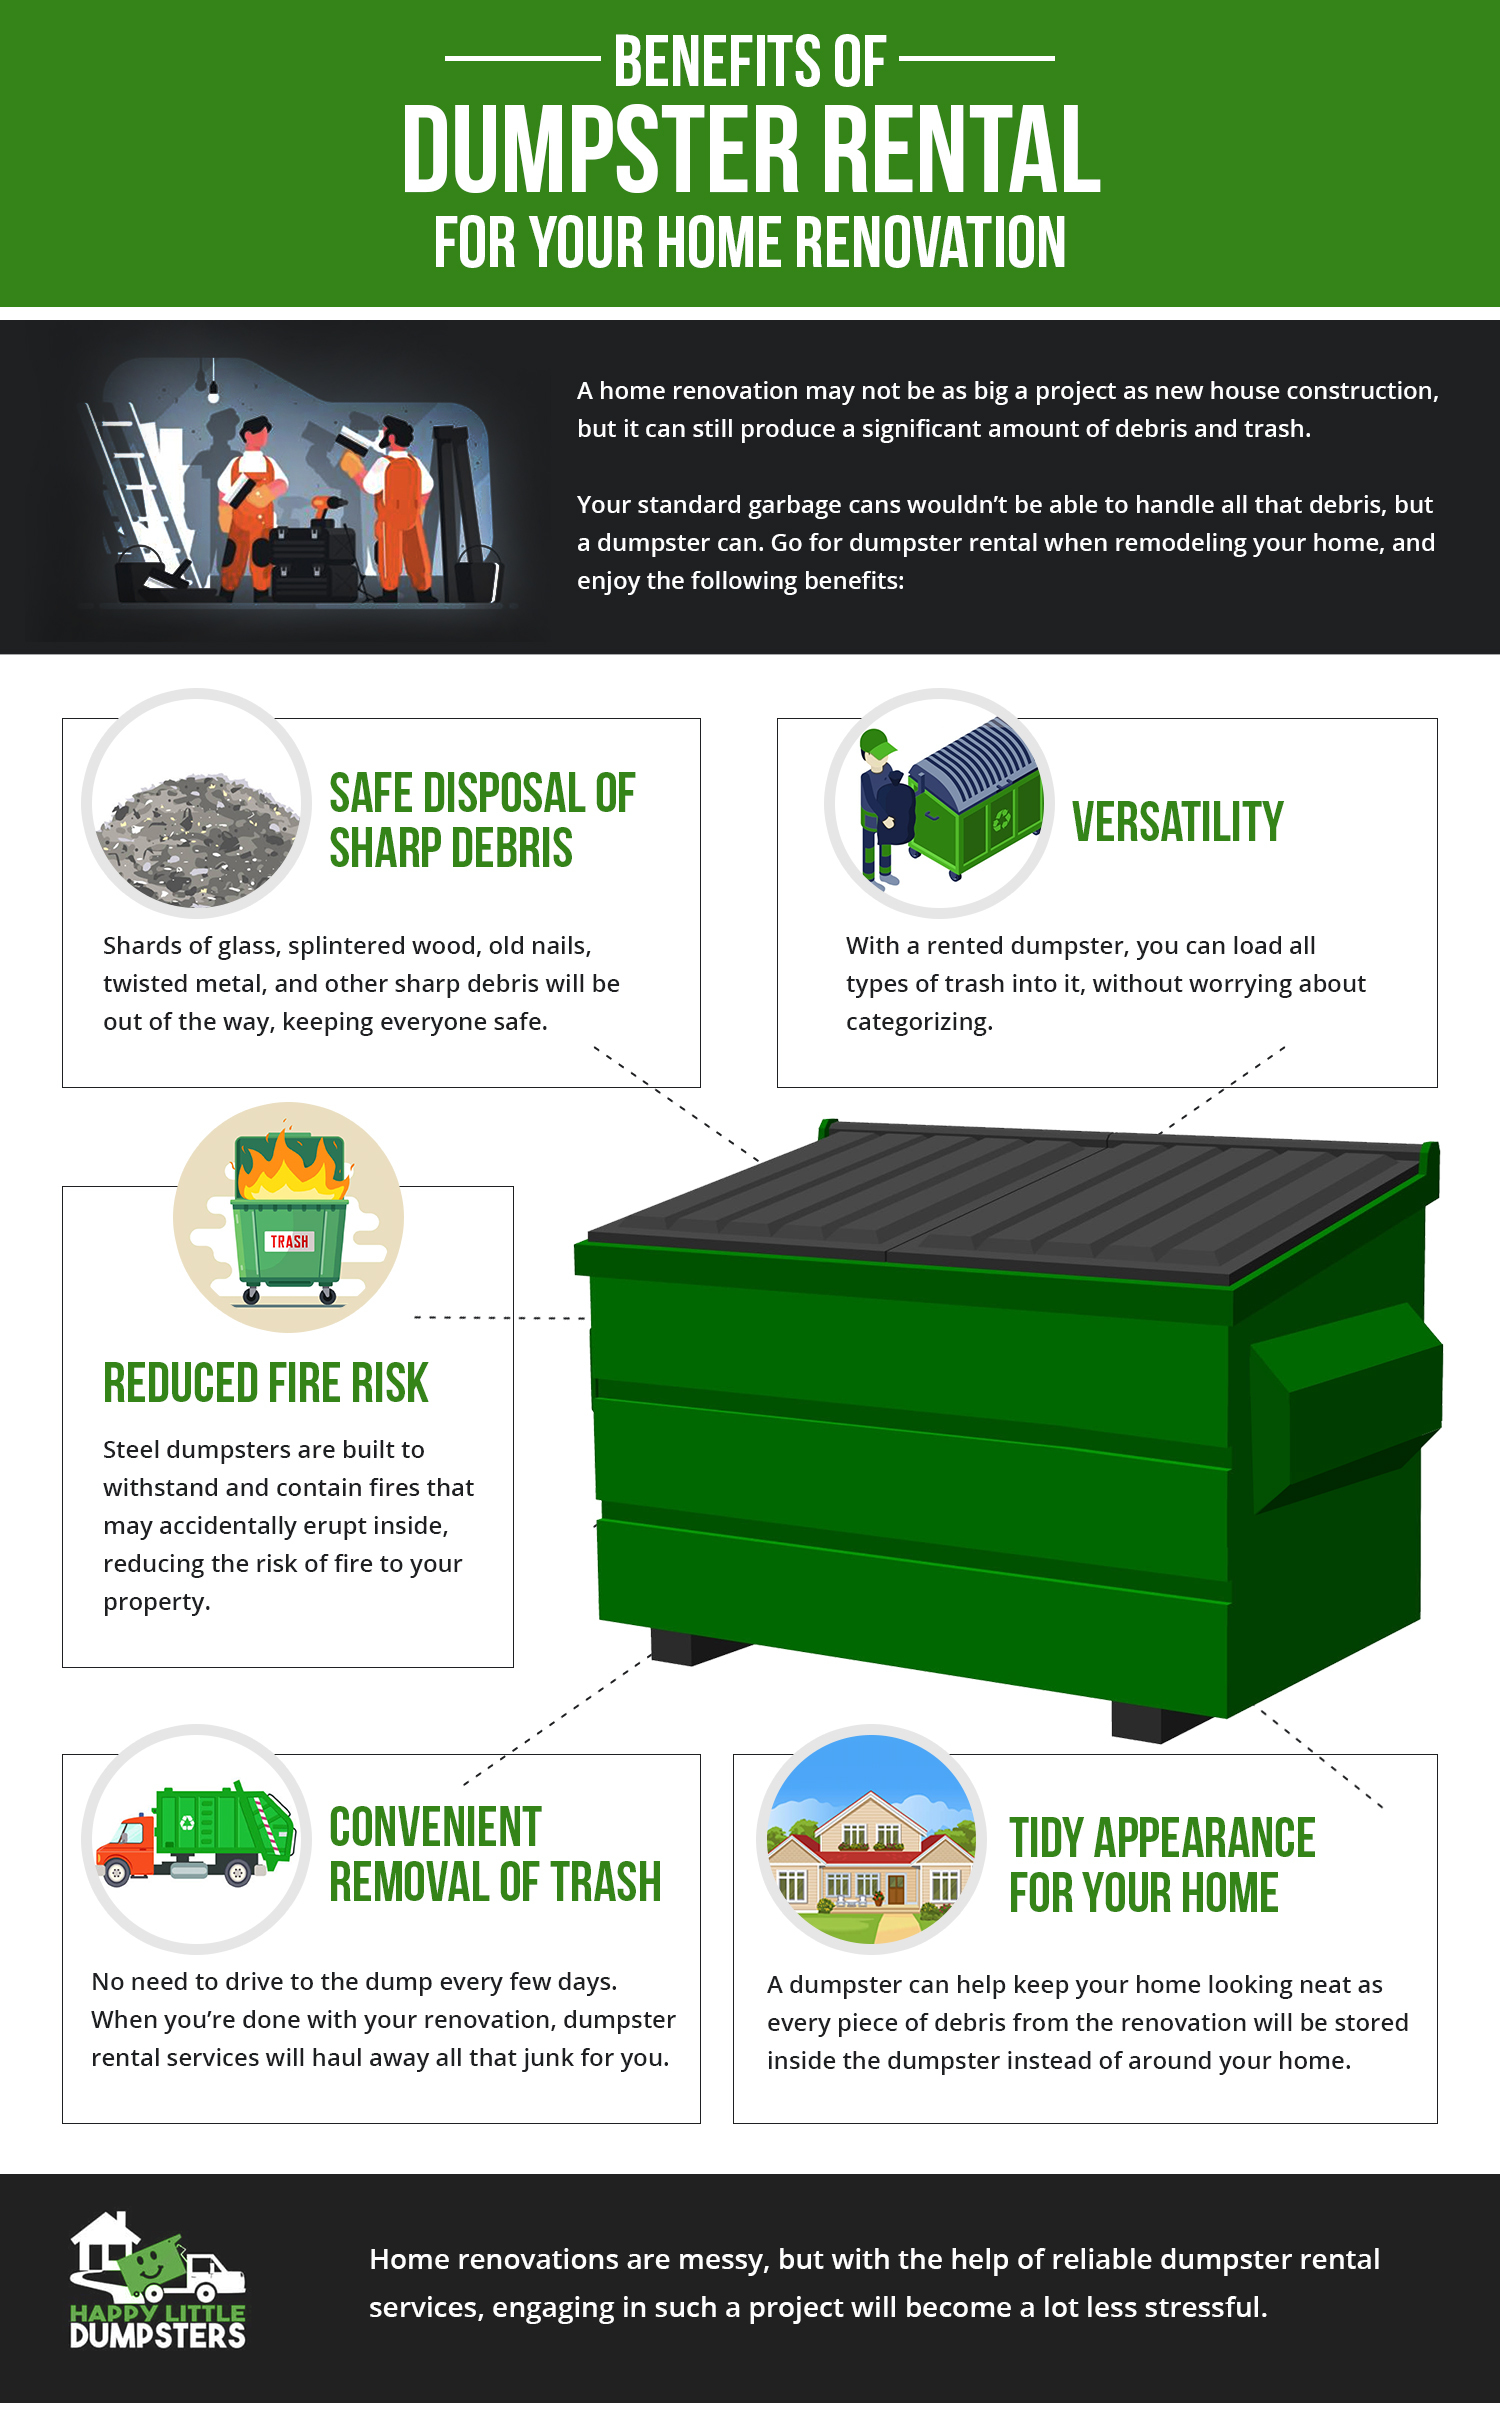 Rent A Dumpster For Your Home Renovation - Infographic